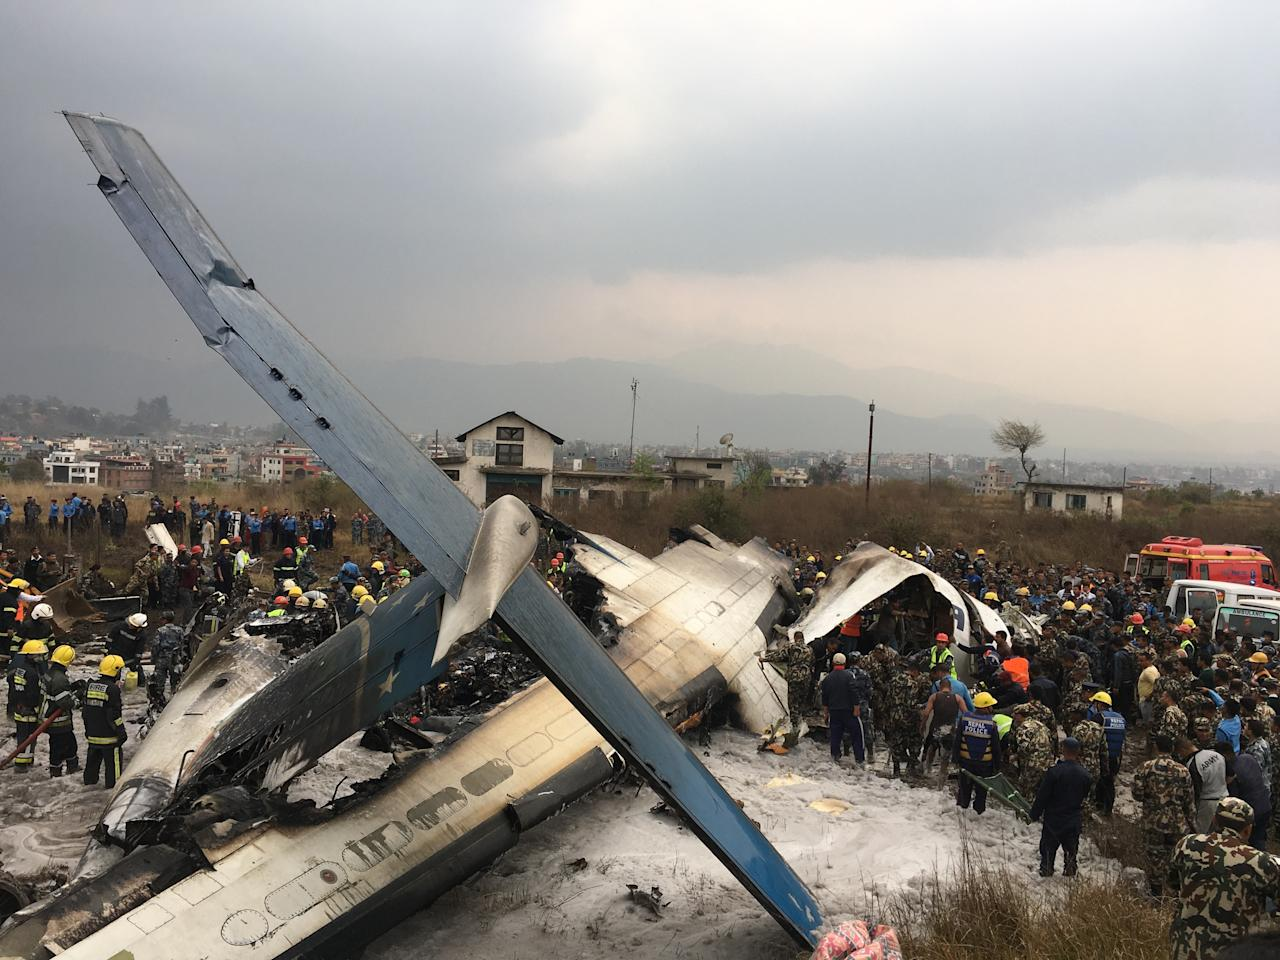 <p>The plane caught fire while landing </p>